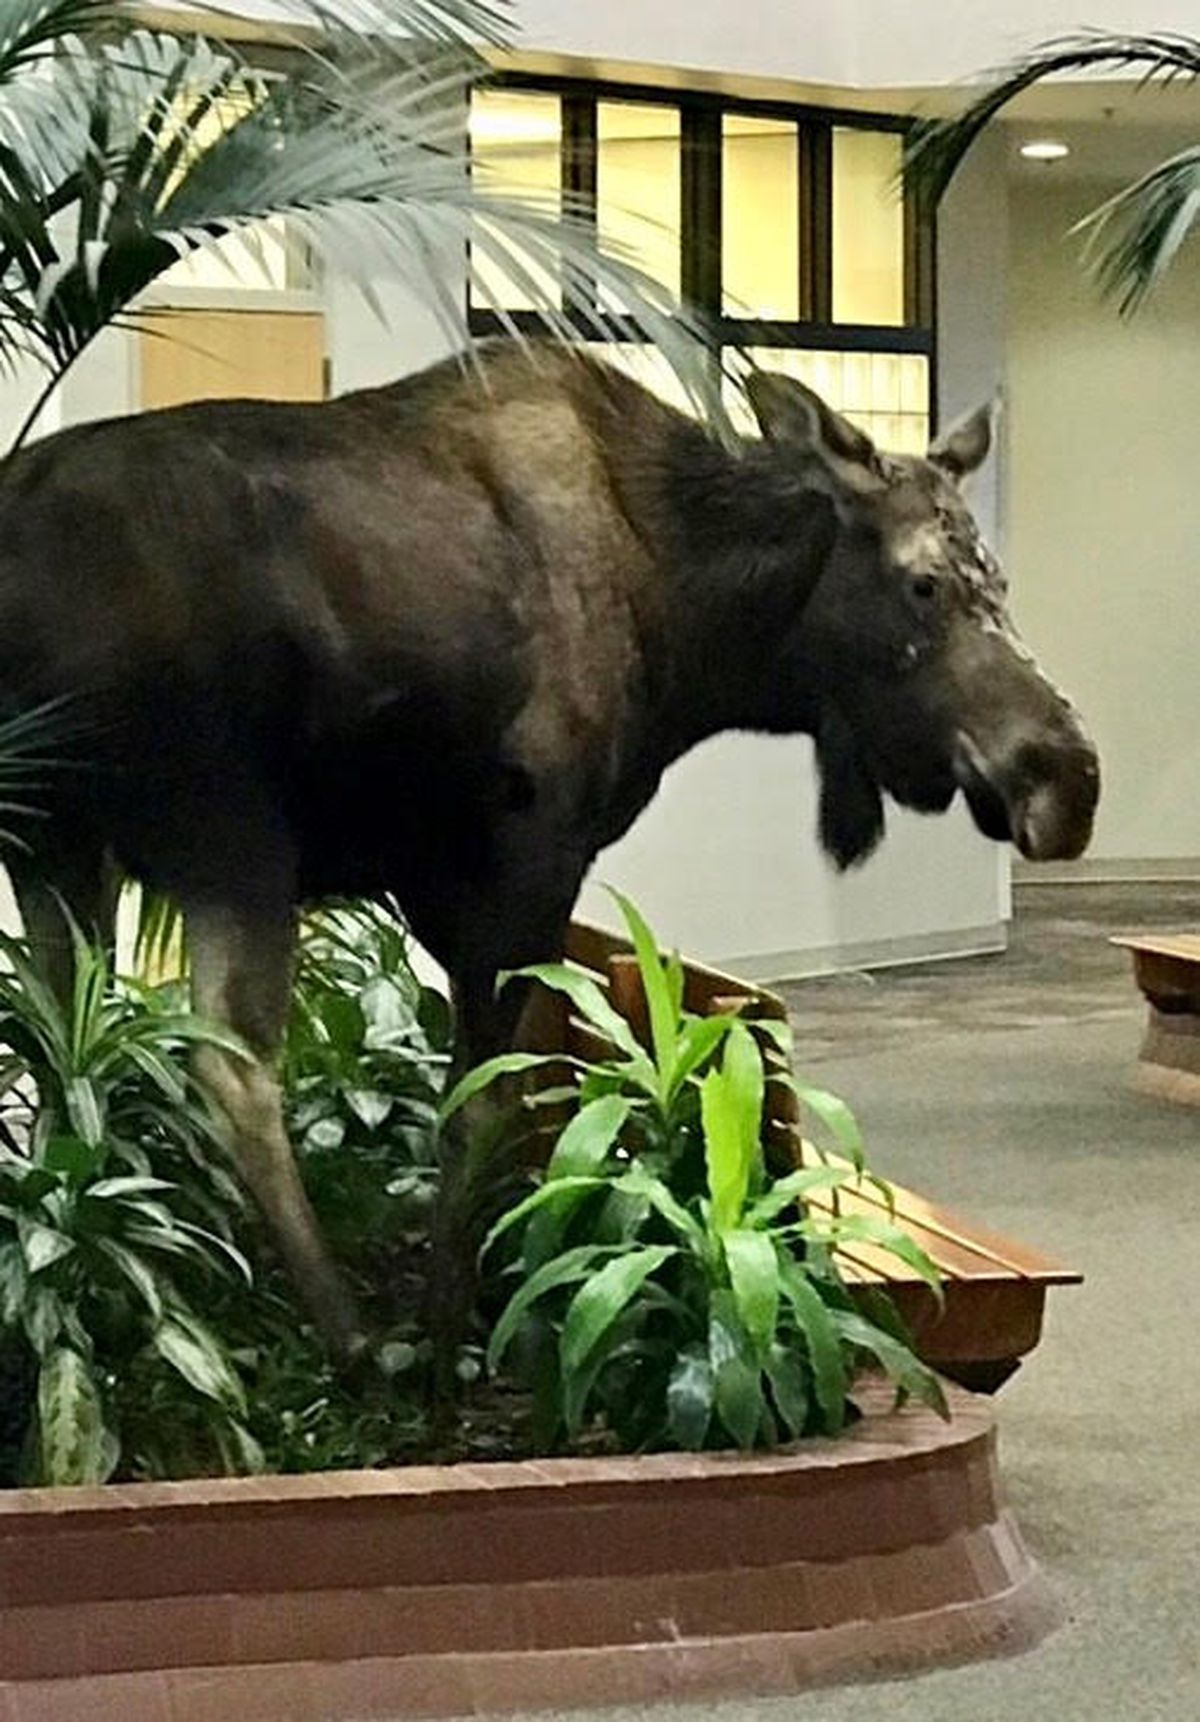 A moose wandered into the atrium of a medical office building at Alaska Regional Hospital on Monday. The animal walked back out the door after eating some plants. (Courtesy Alaska Regional Hospital)